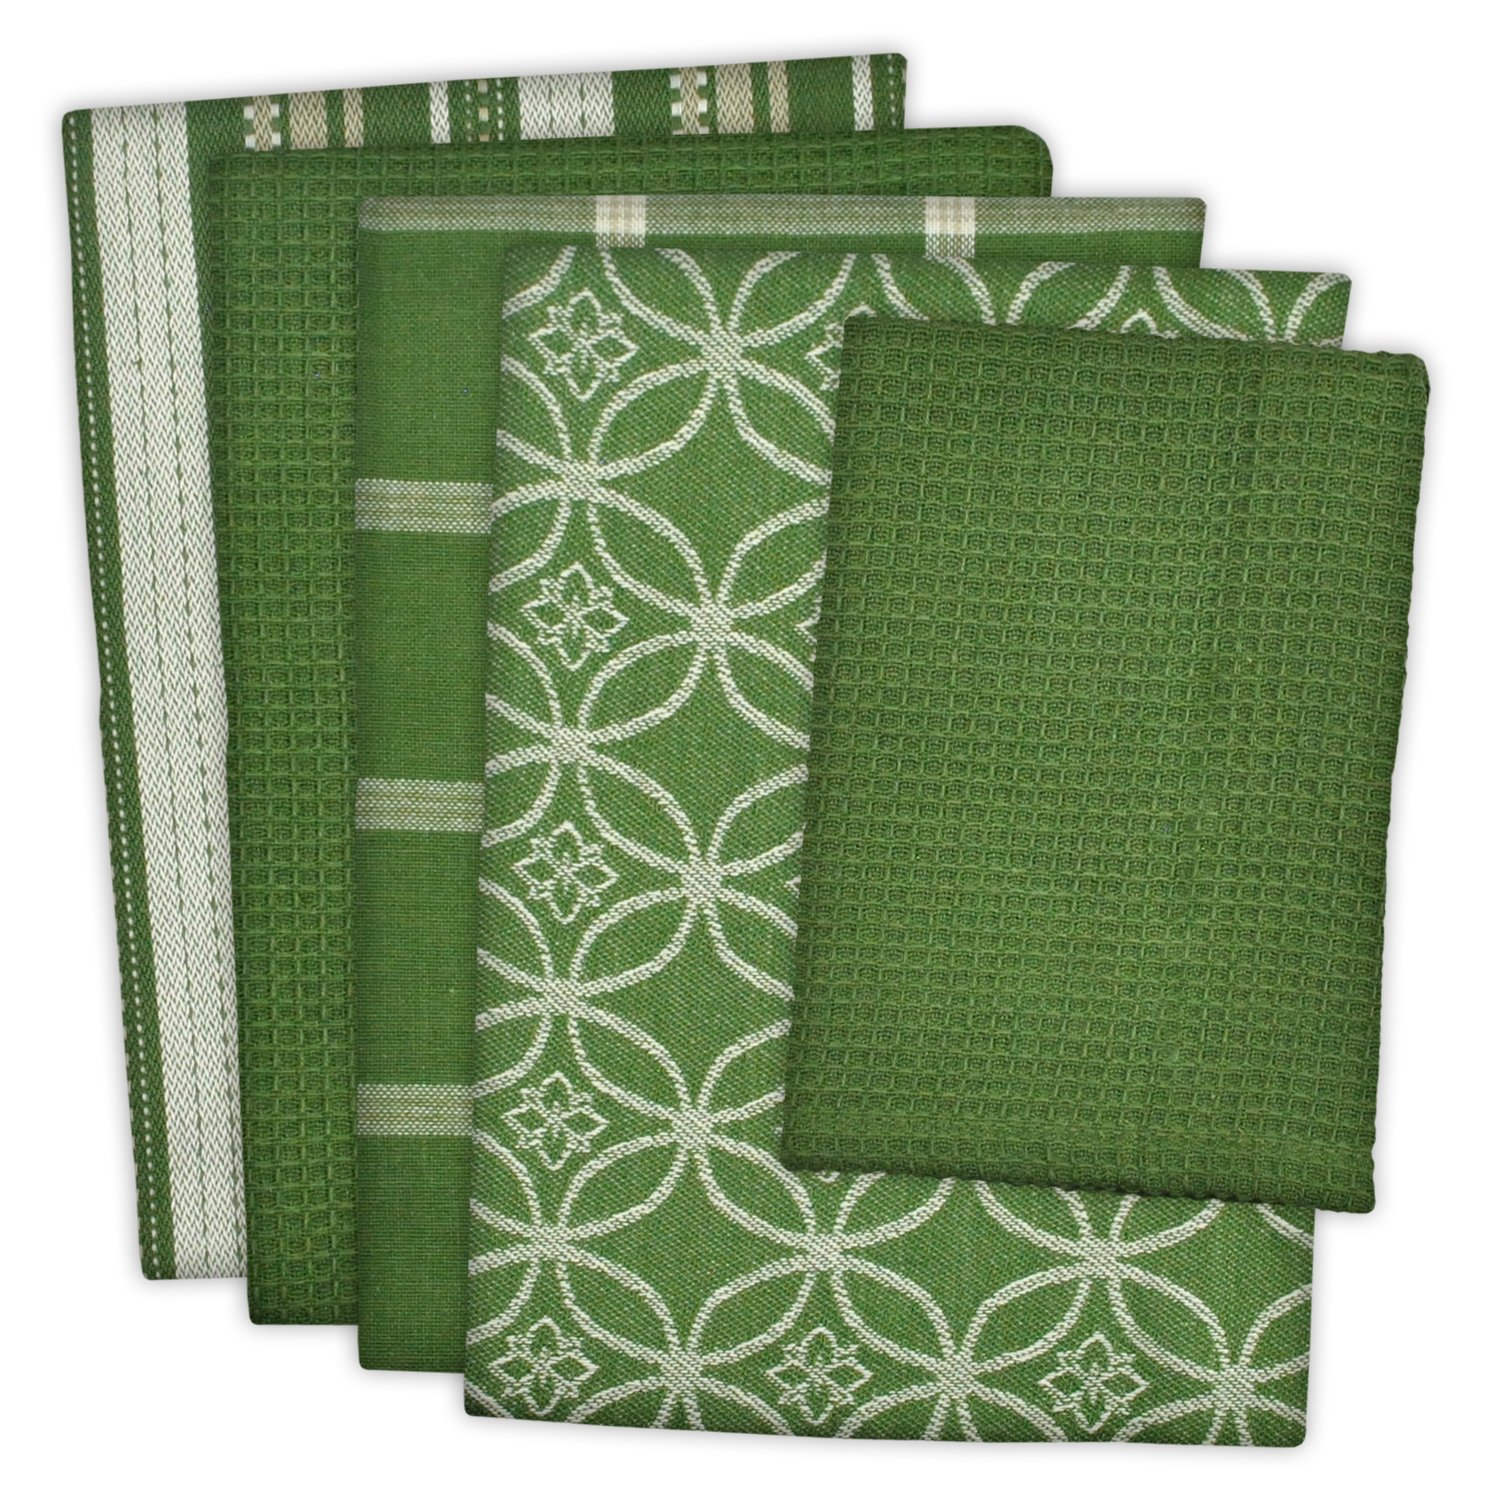 DII Cotton Oversized Kitchen Dish Towels 18 x 28'' and Dishcloth 13 x 13'', Set of 5 , Absorbent Washing Drying Dishtowels for Everyday Cooking and Baking-Sage